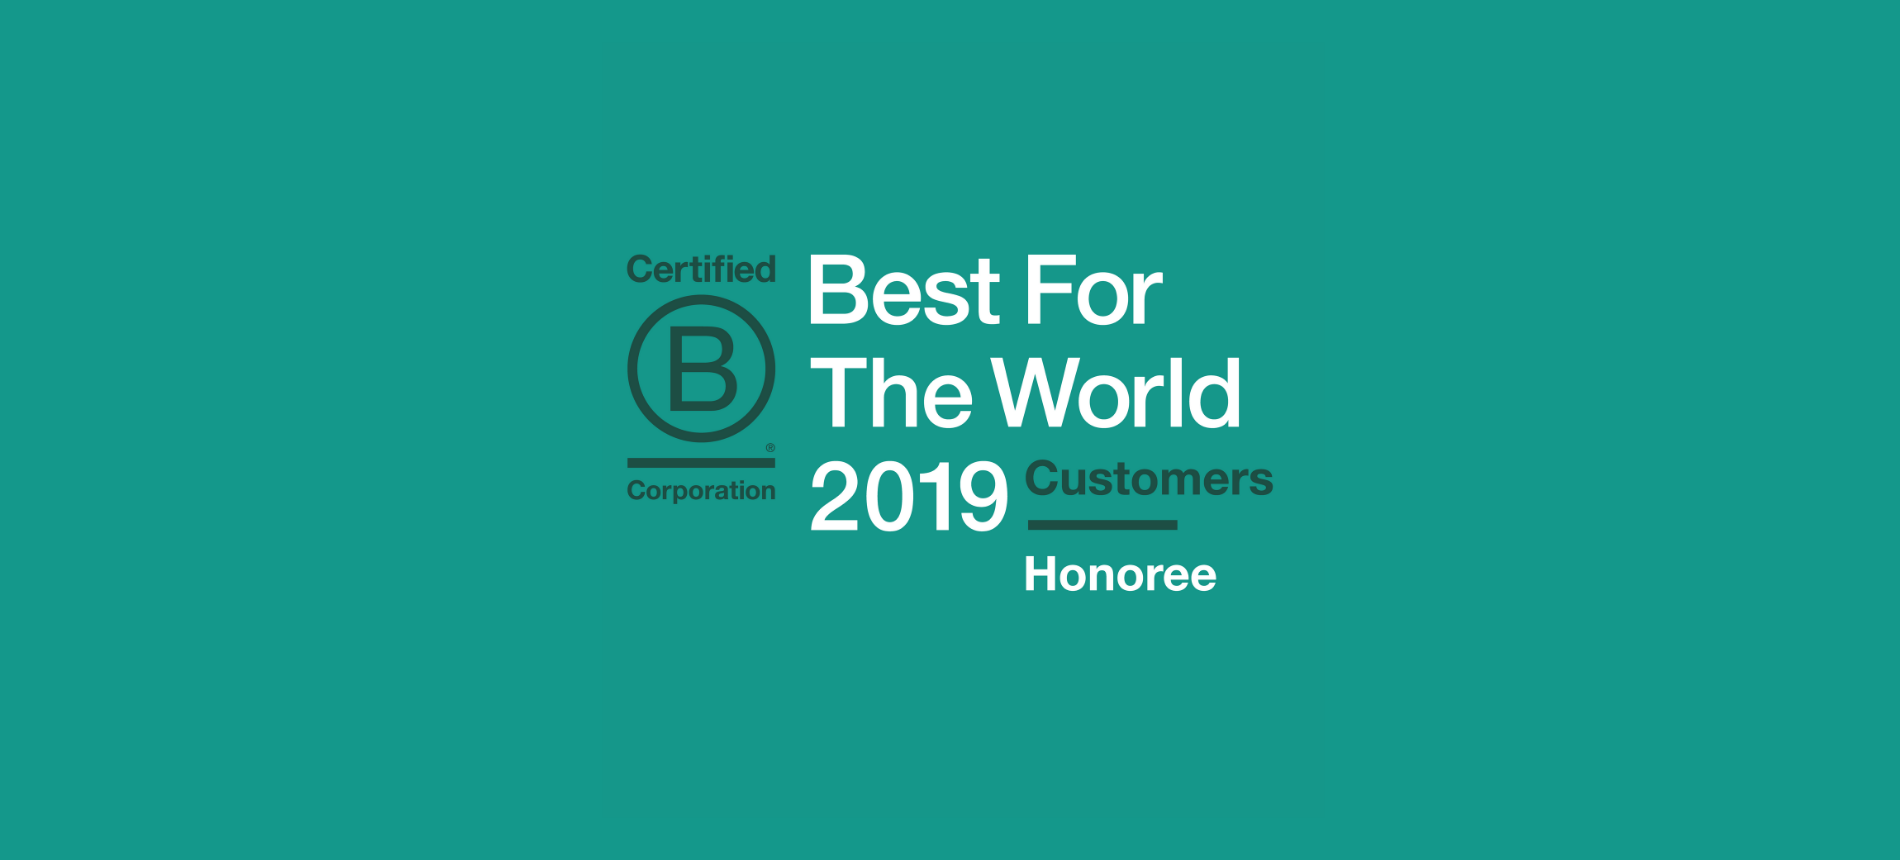 2019 B Corp Best for the World customers honoree